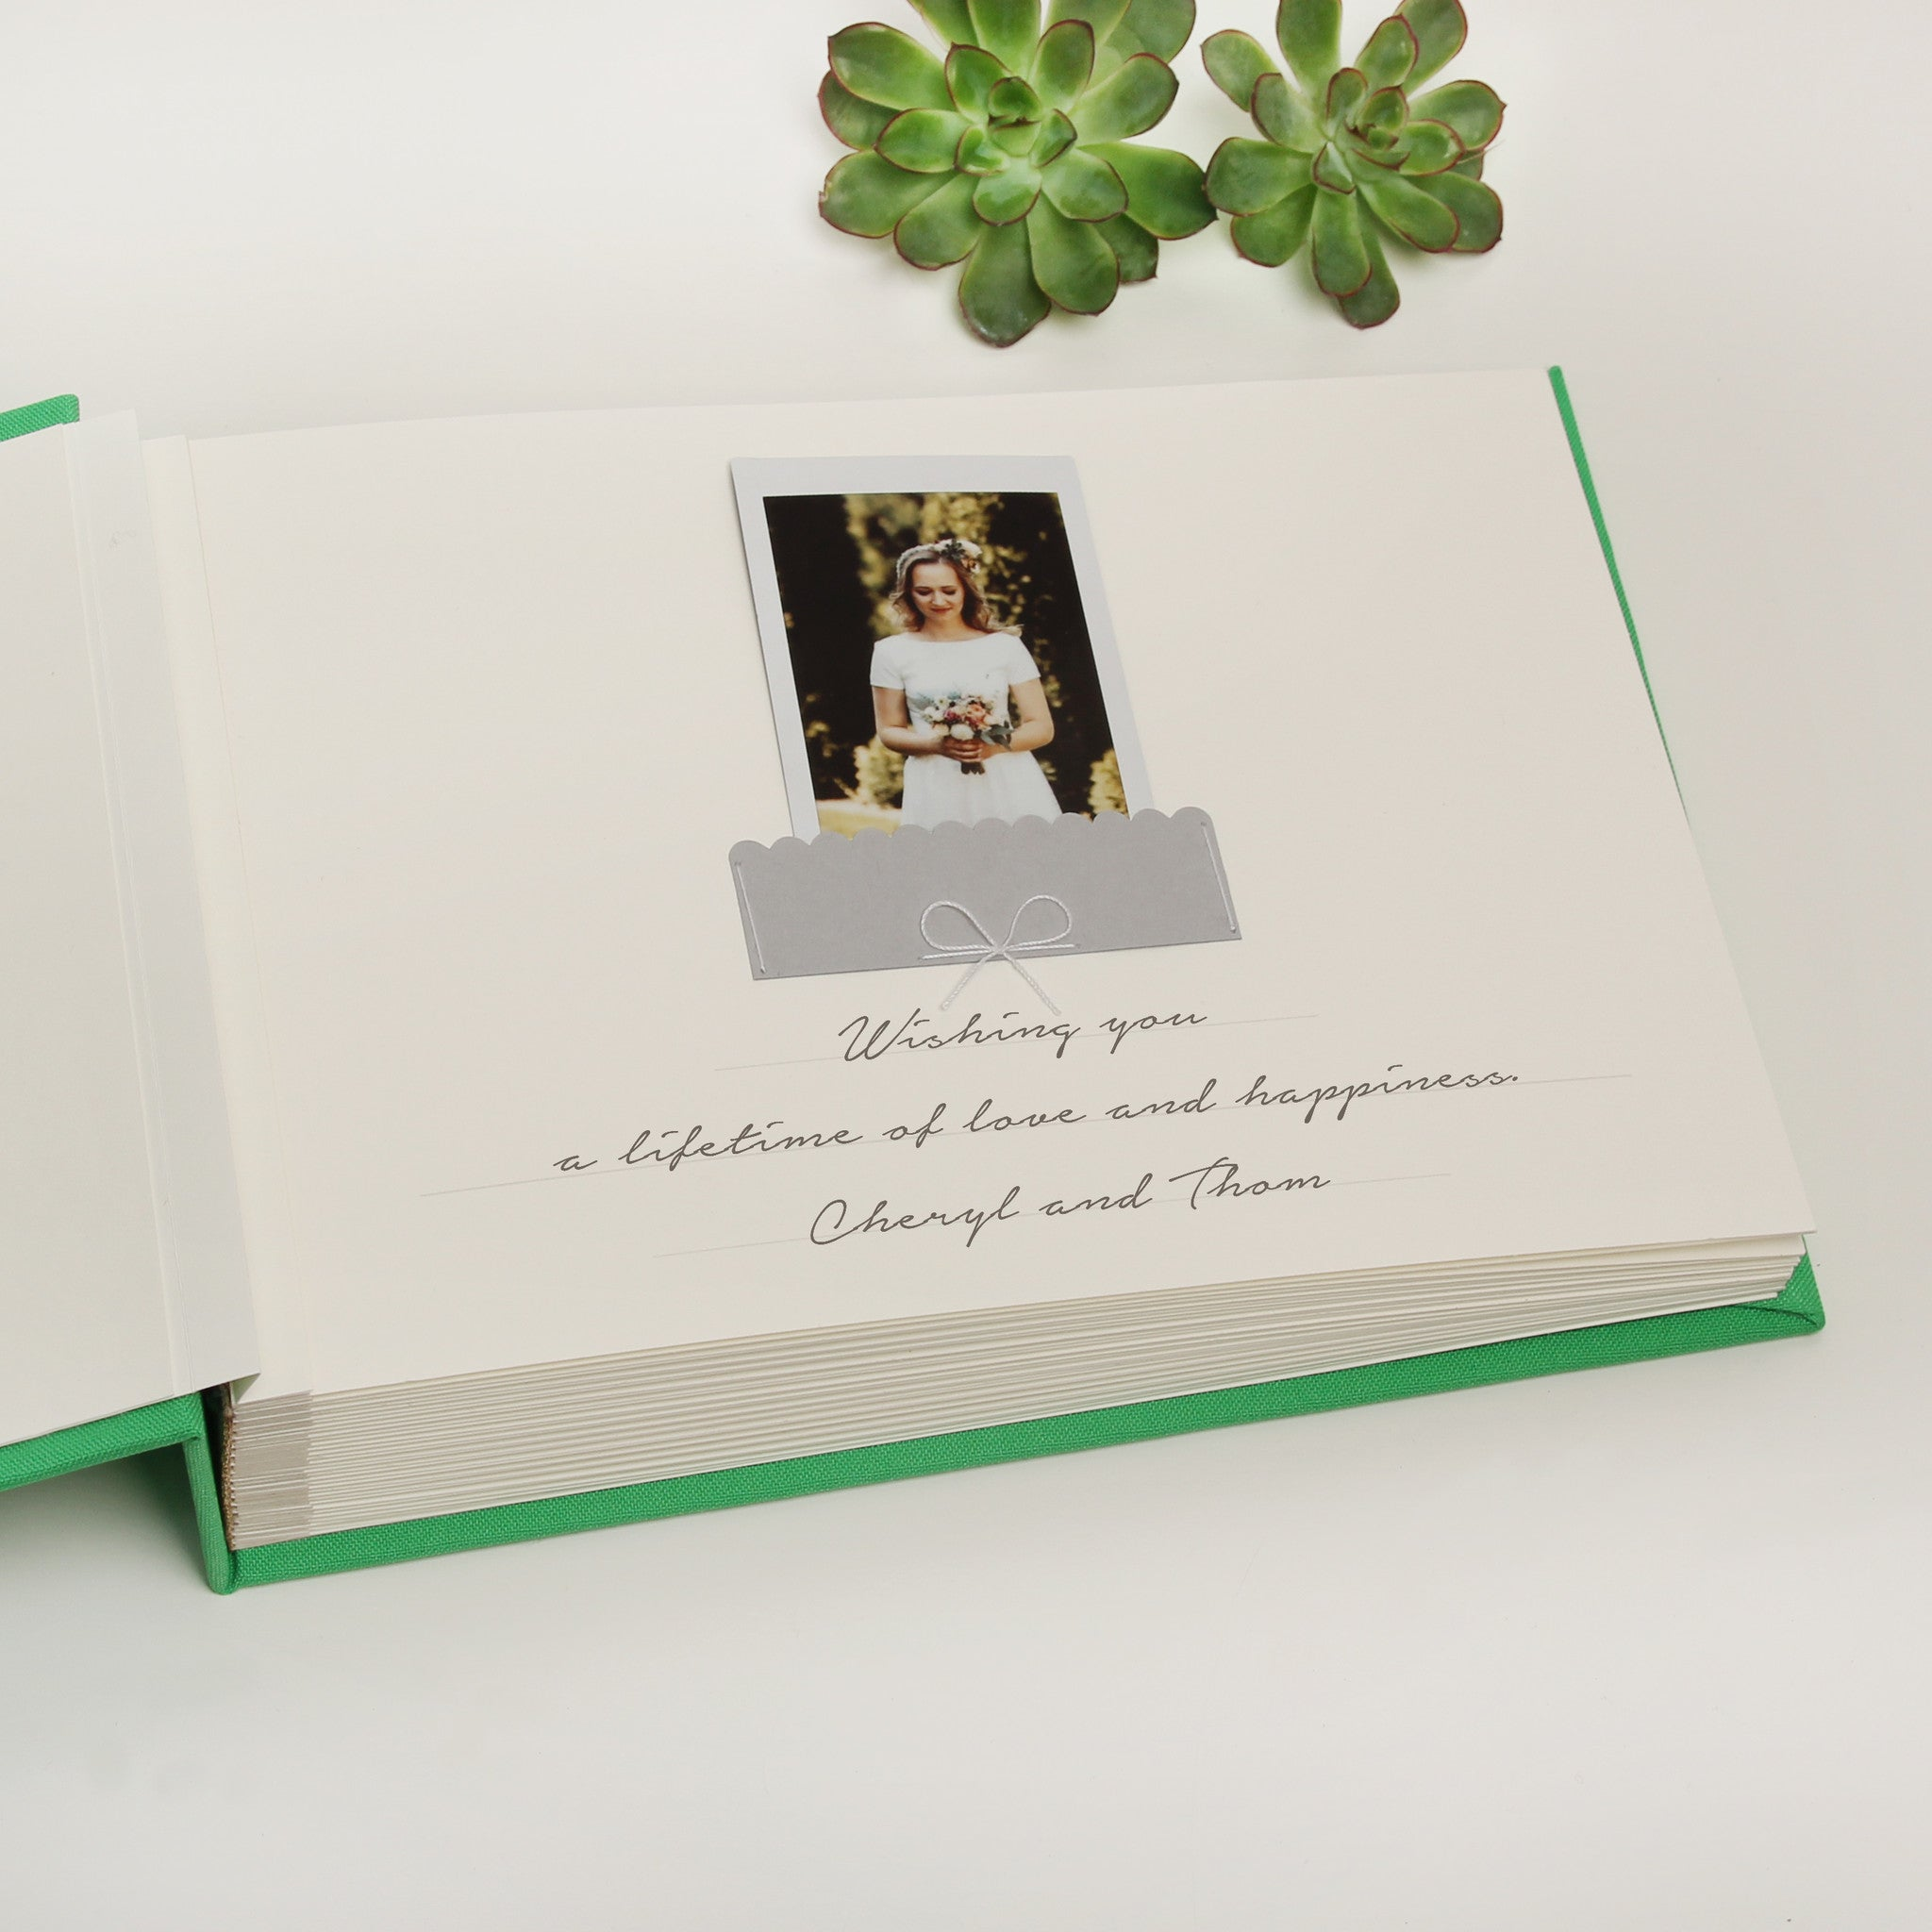 Green Instax guest book Photo Wedding GuestBook Greenery with Gold Foil Lettering Pocket Wedding Album - by Liumy - Liumy